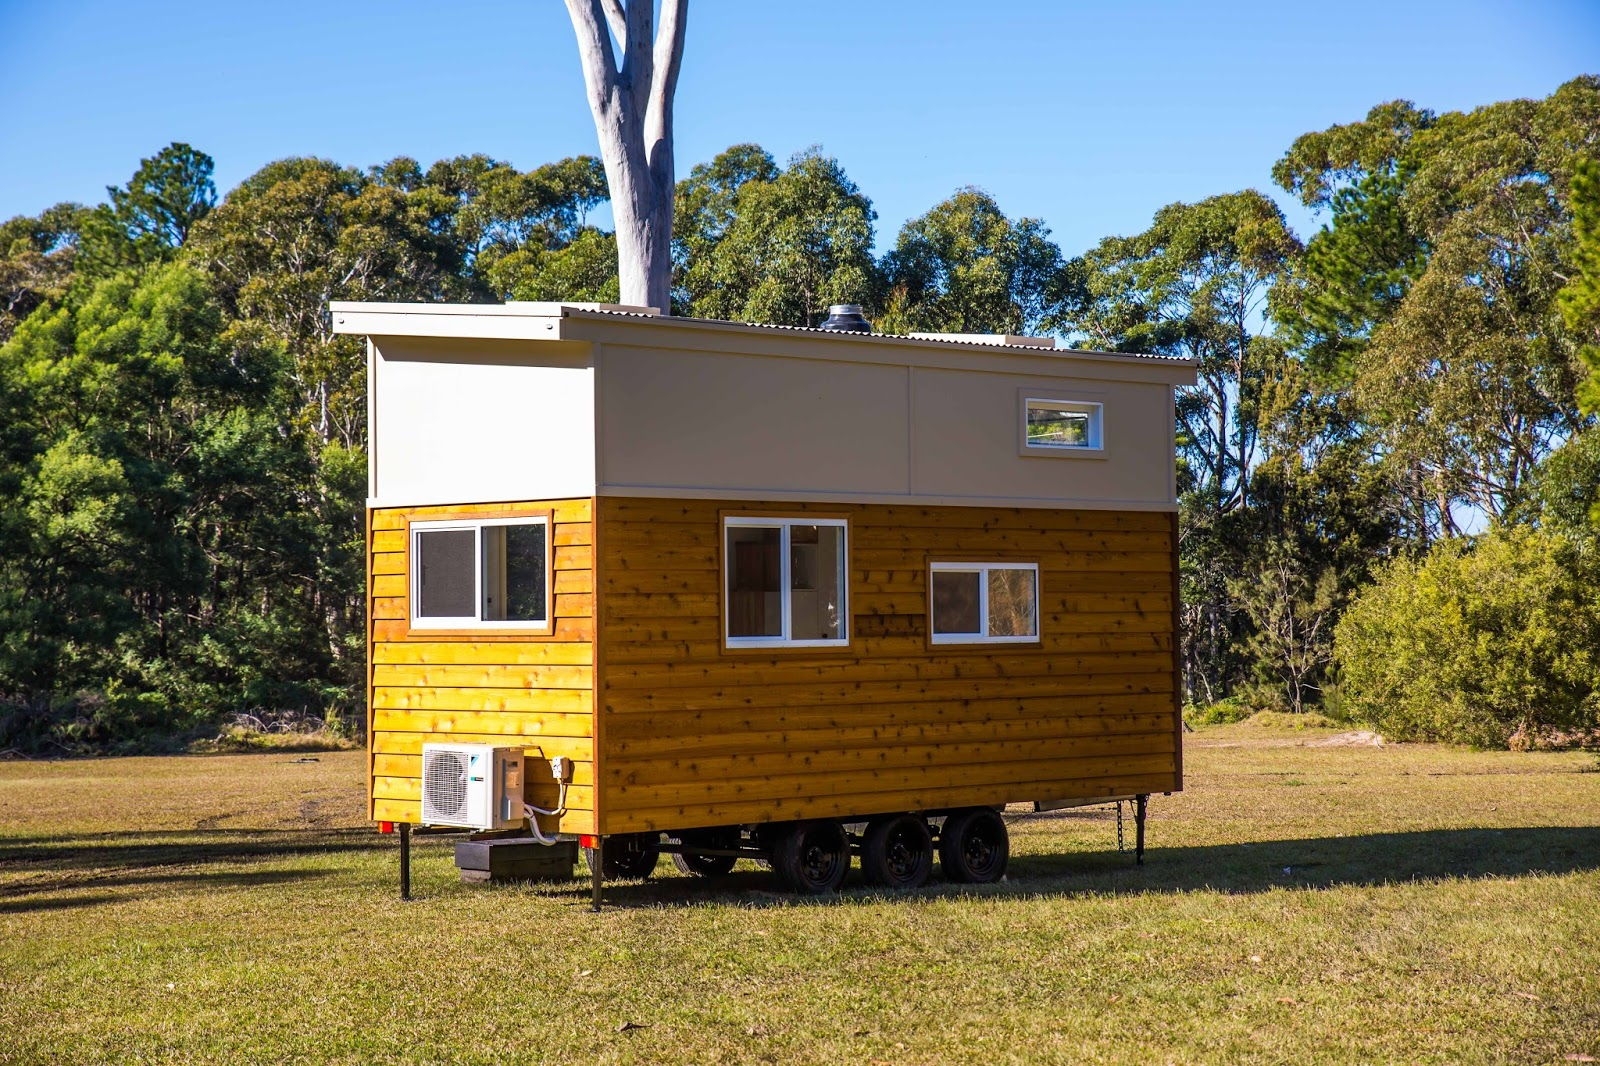 Tiny house town graduate series 6000dls by designer eco homes for Eco home builders